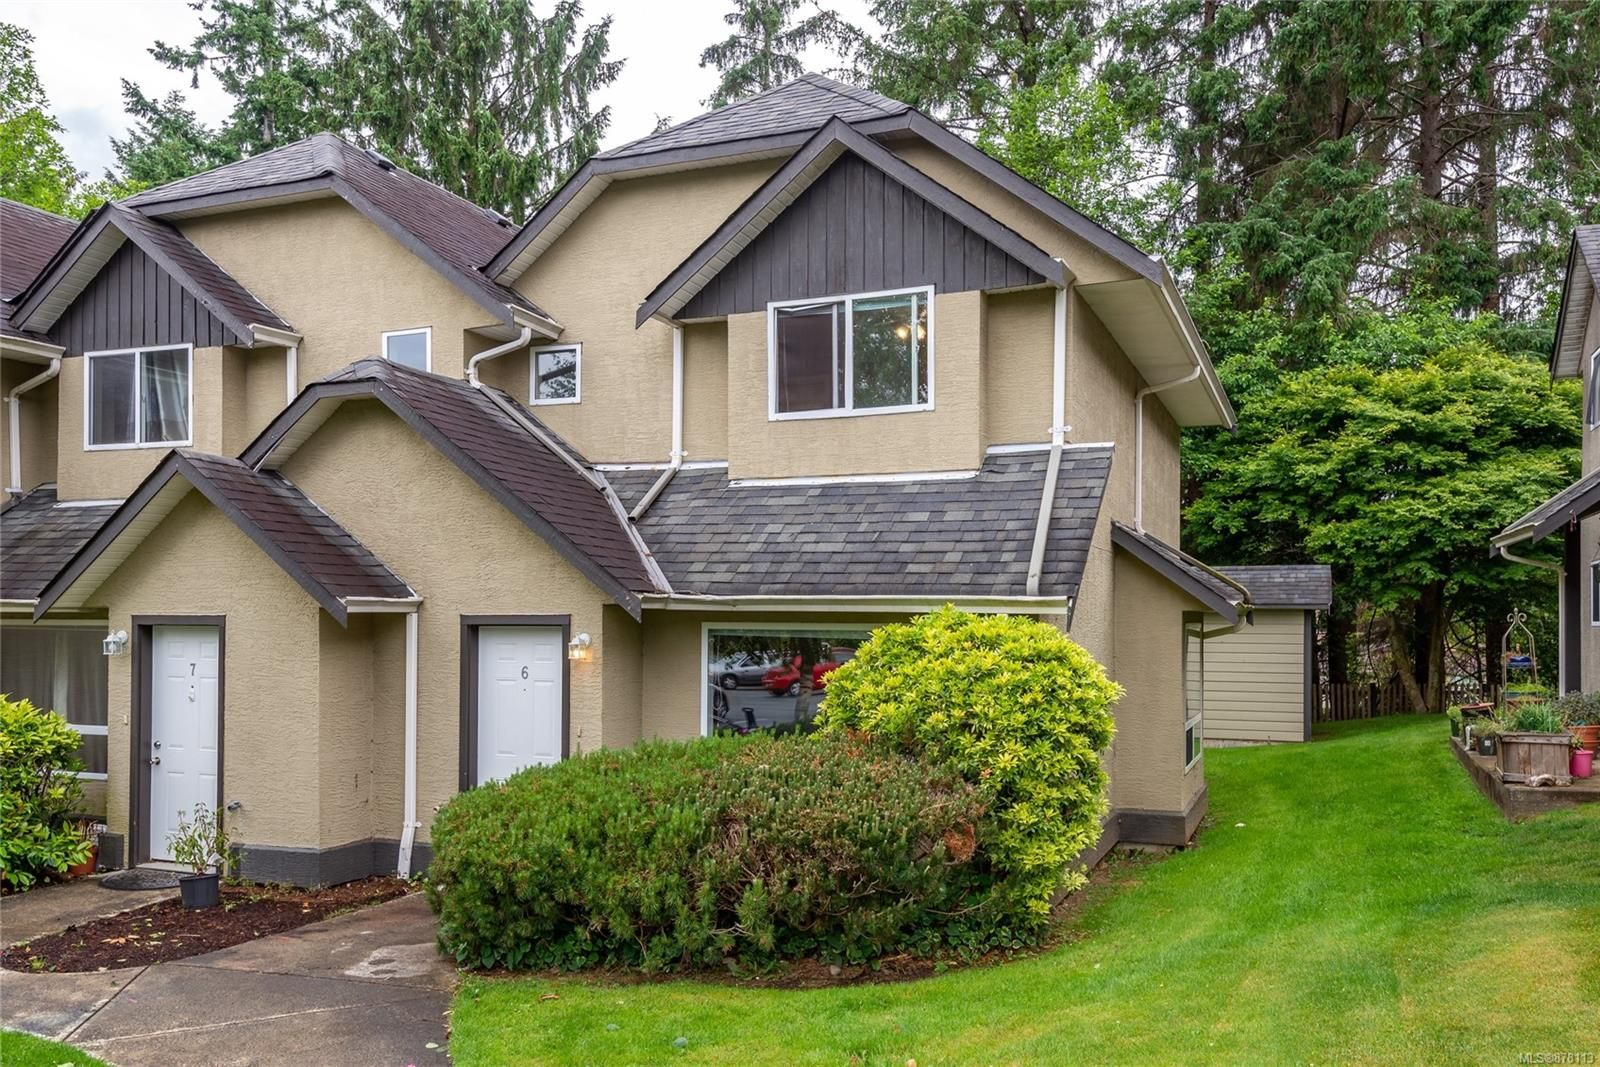 Main Photo: 6 555 Rockland Rd in : CR Campbell River South Row/Townhouse for sale (Campbell River)  : MLS®# 878113